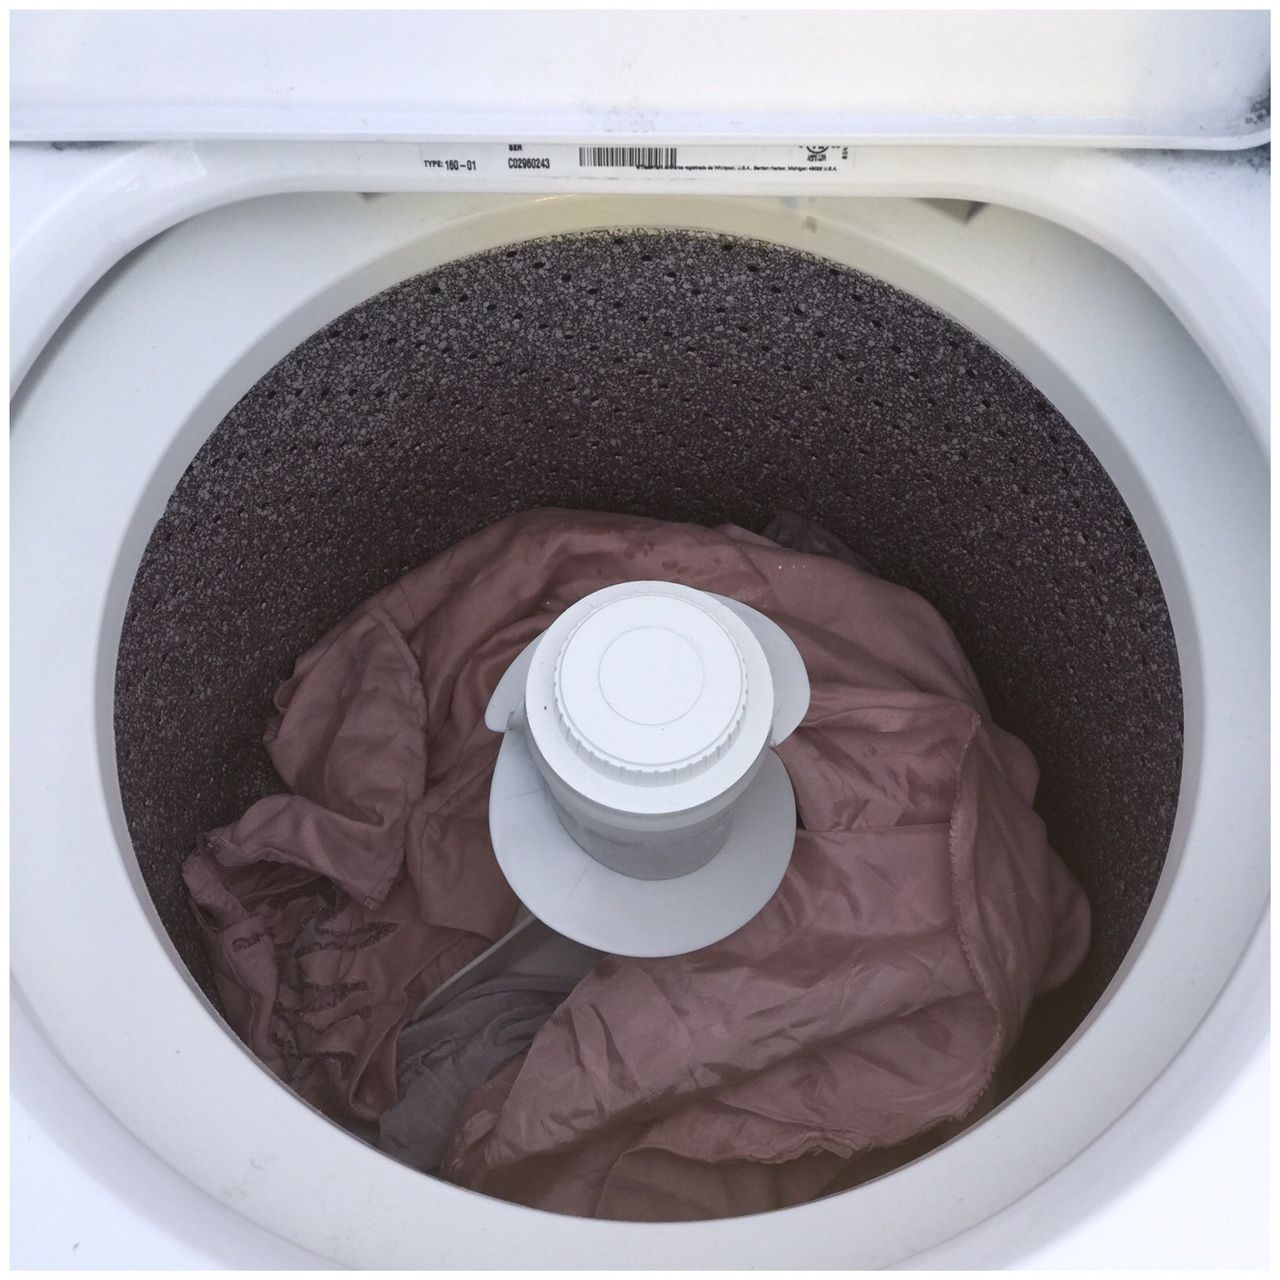 washing machine dye